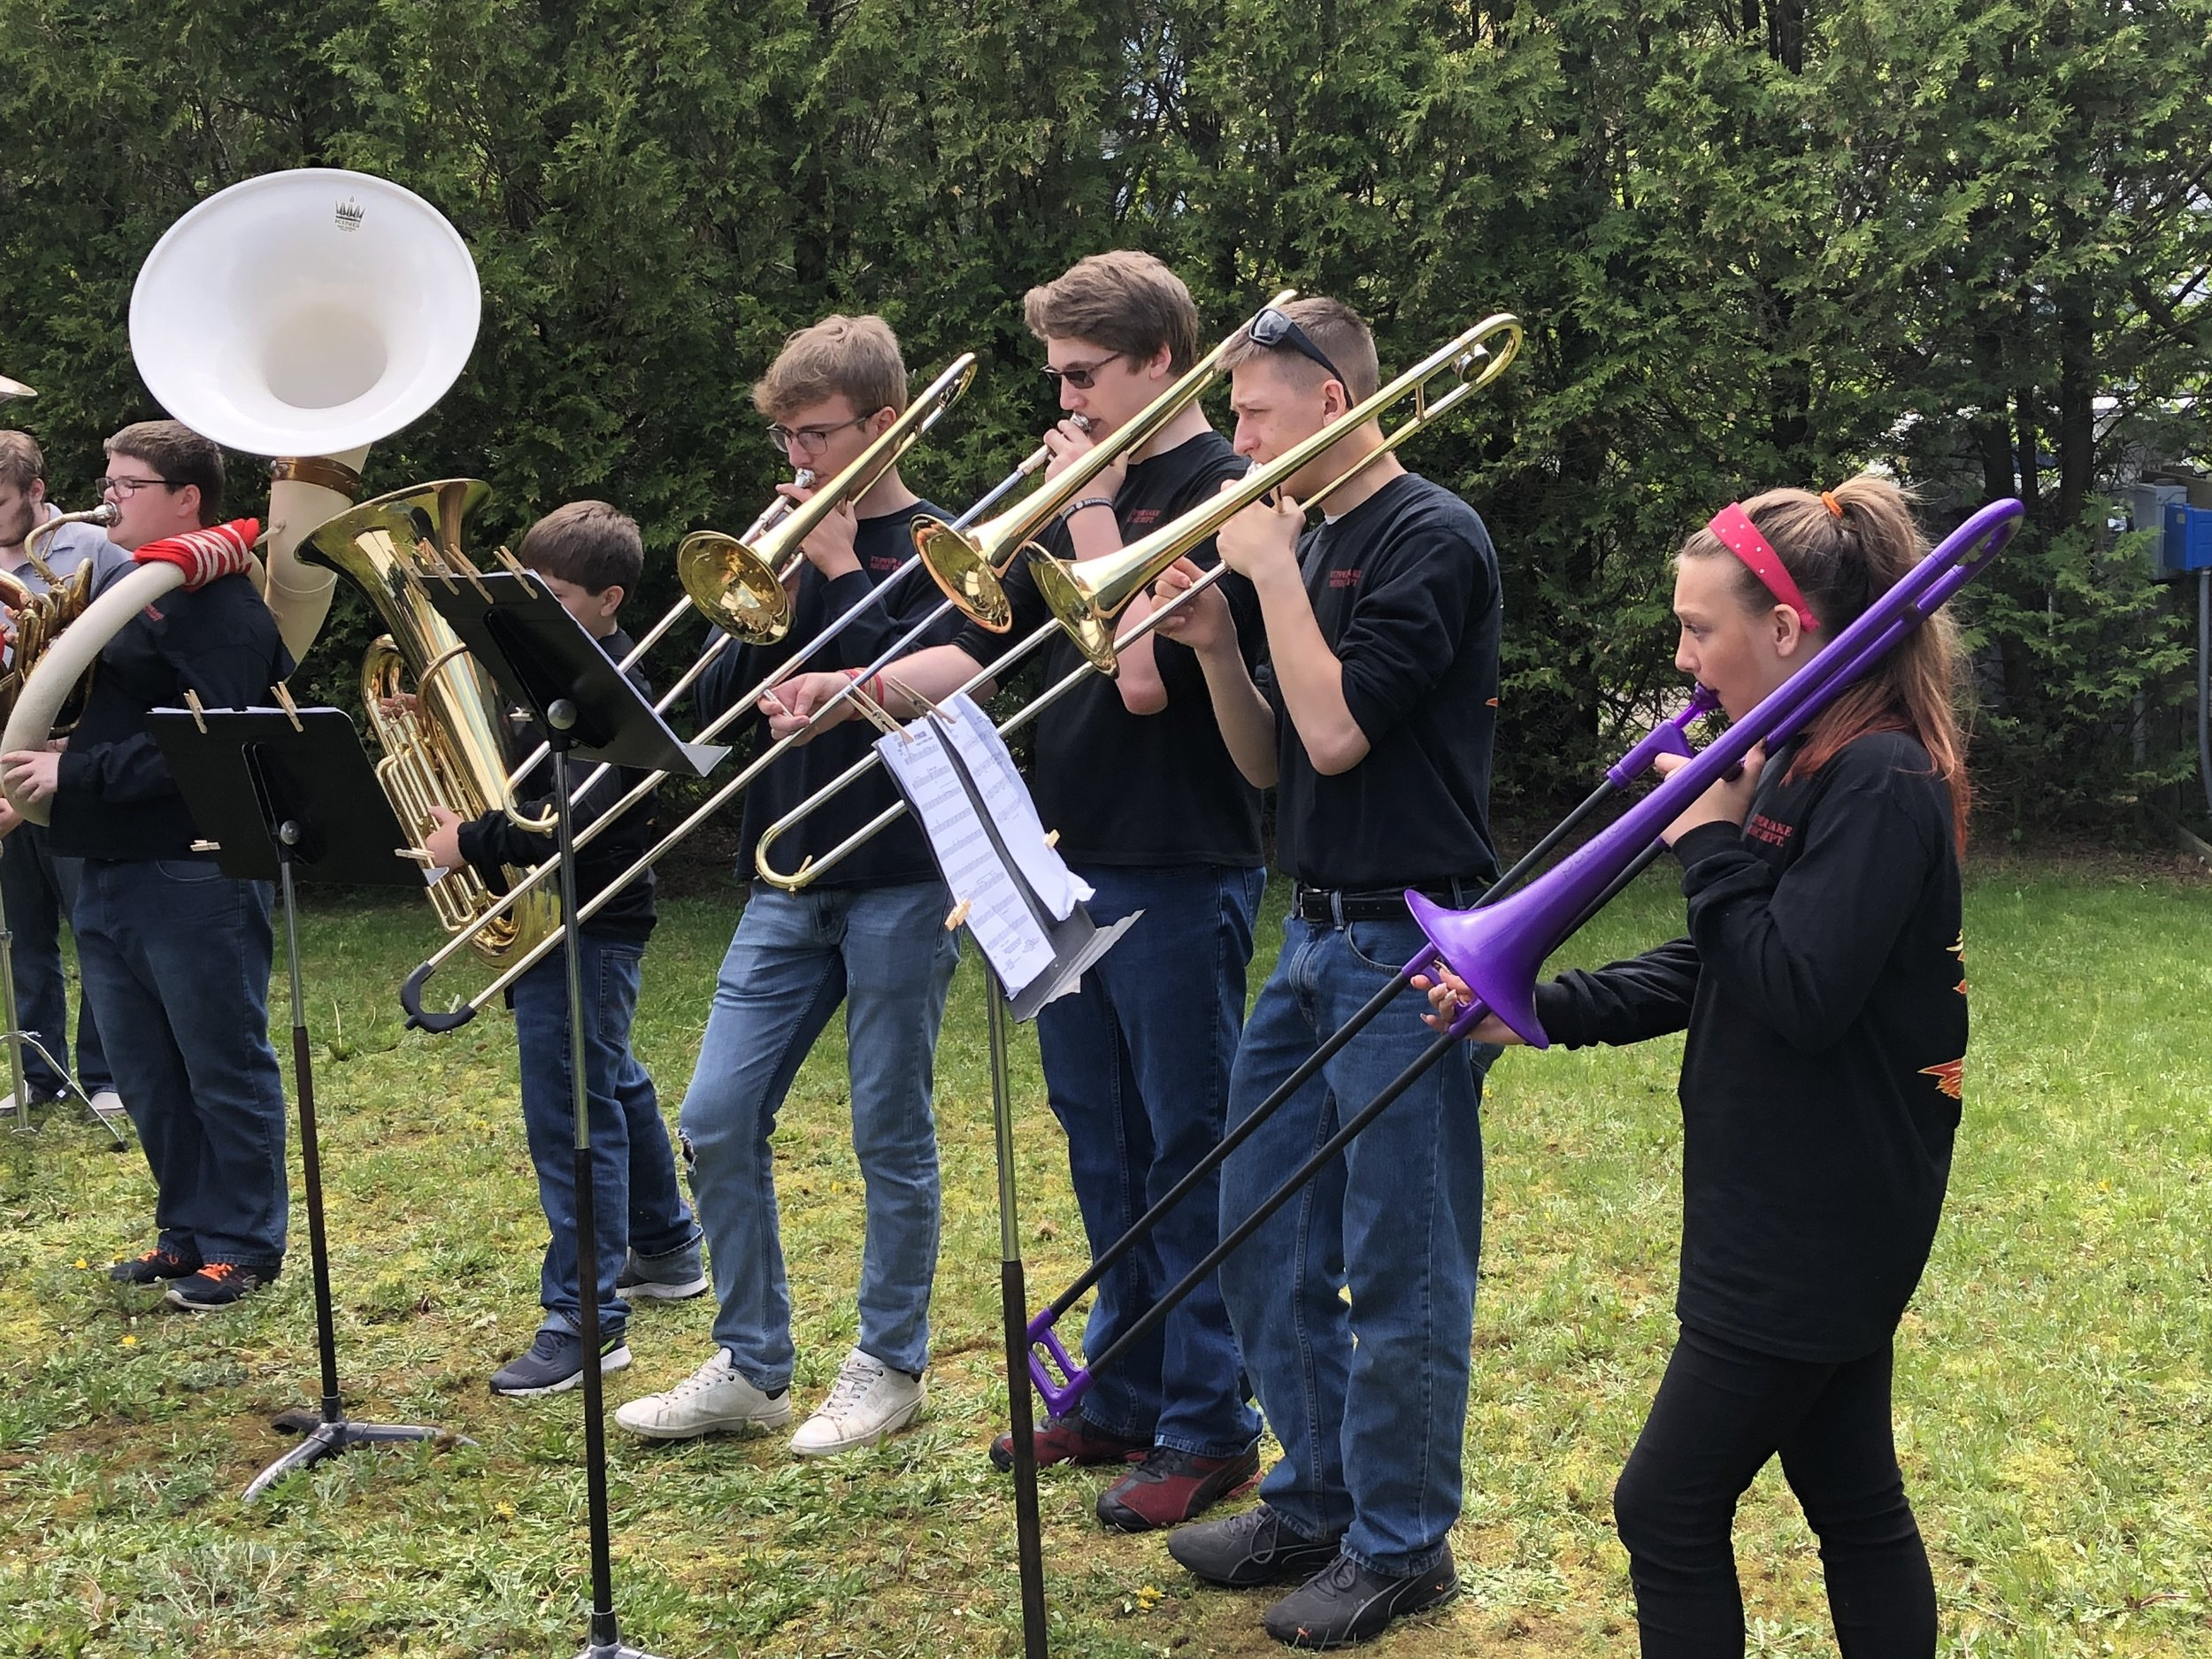 Members of the Tupper Lake High School Band, under the direction of Laura Davison, again performed with great enthusiasm and talent at Monday's Memorial Day ceremonies, treating the crowd to well-played and rousing versions of patriotic anthems and a medley of the official songs of each branch of the American military.